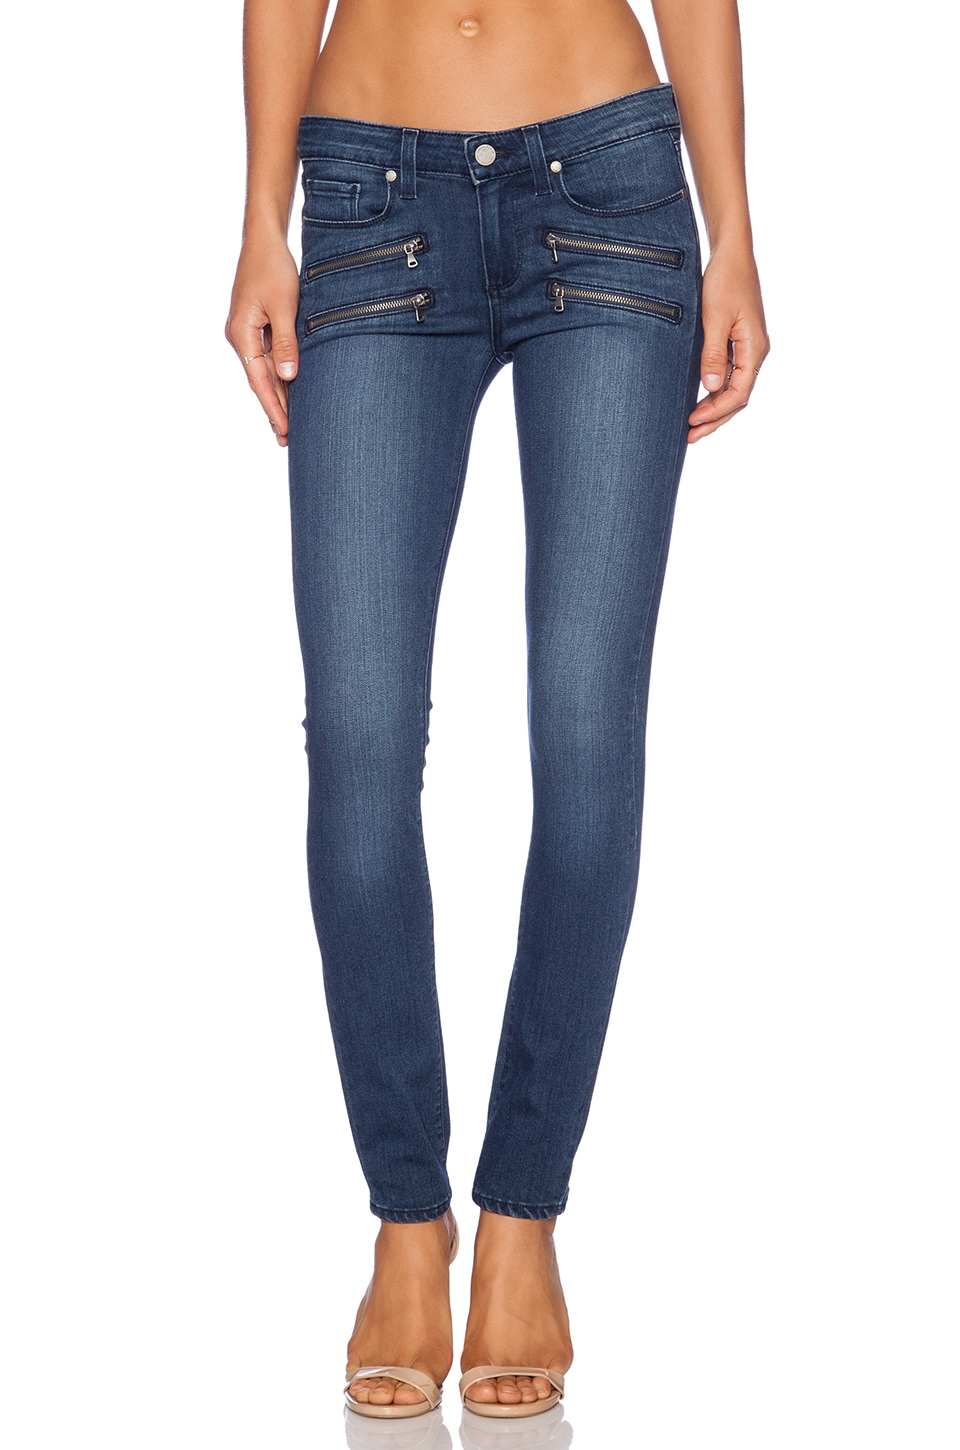 PAIGE Edgemont Ultra Skinny in Gabrielle No Whiskers